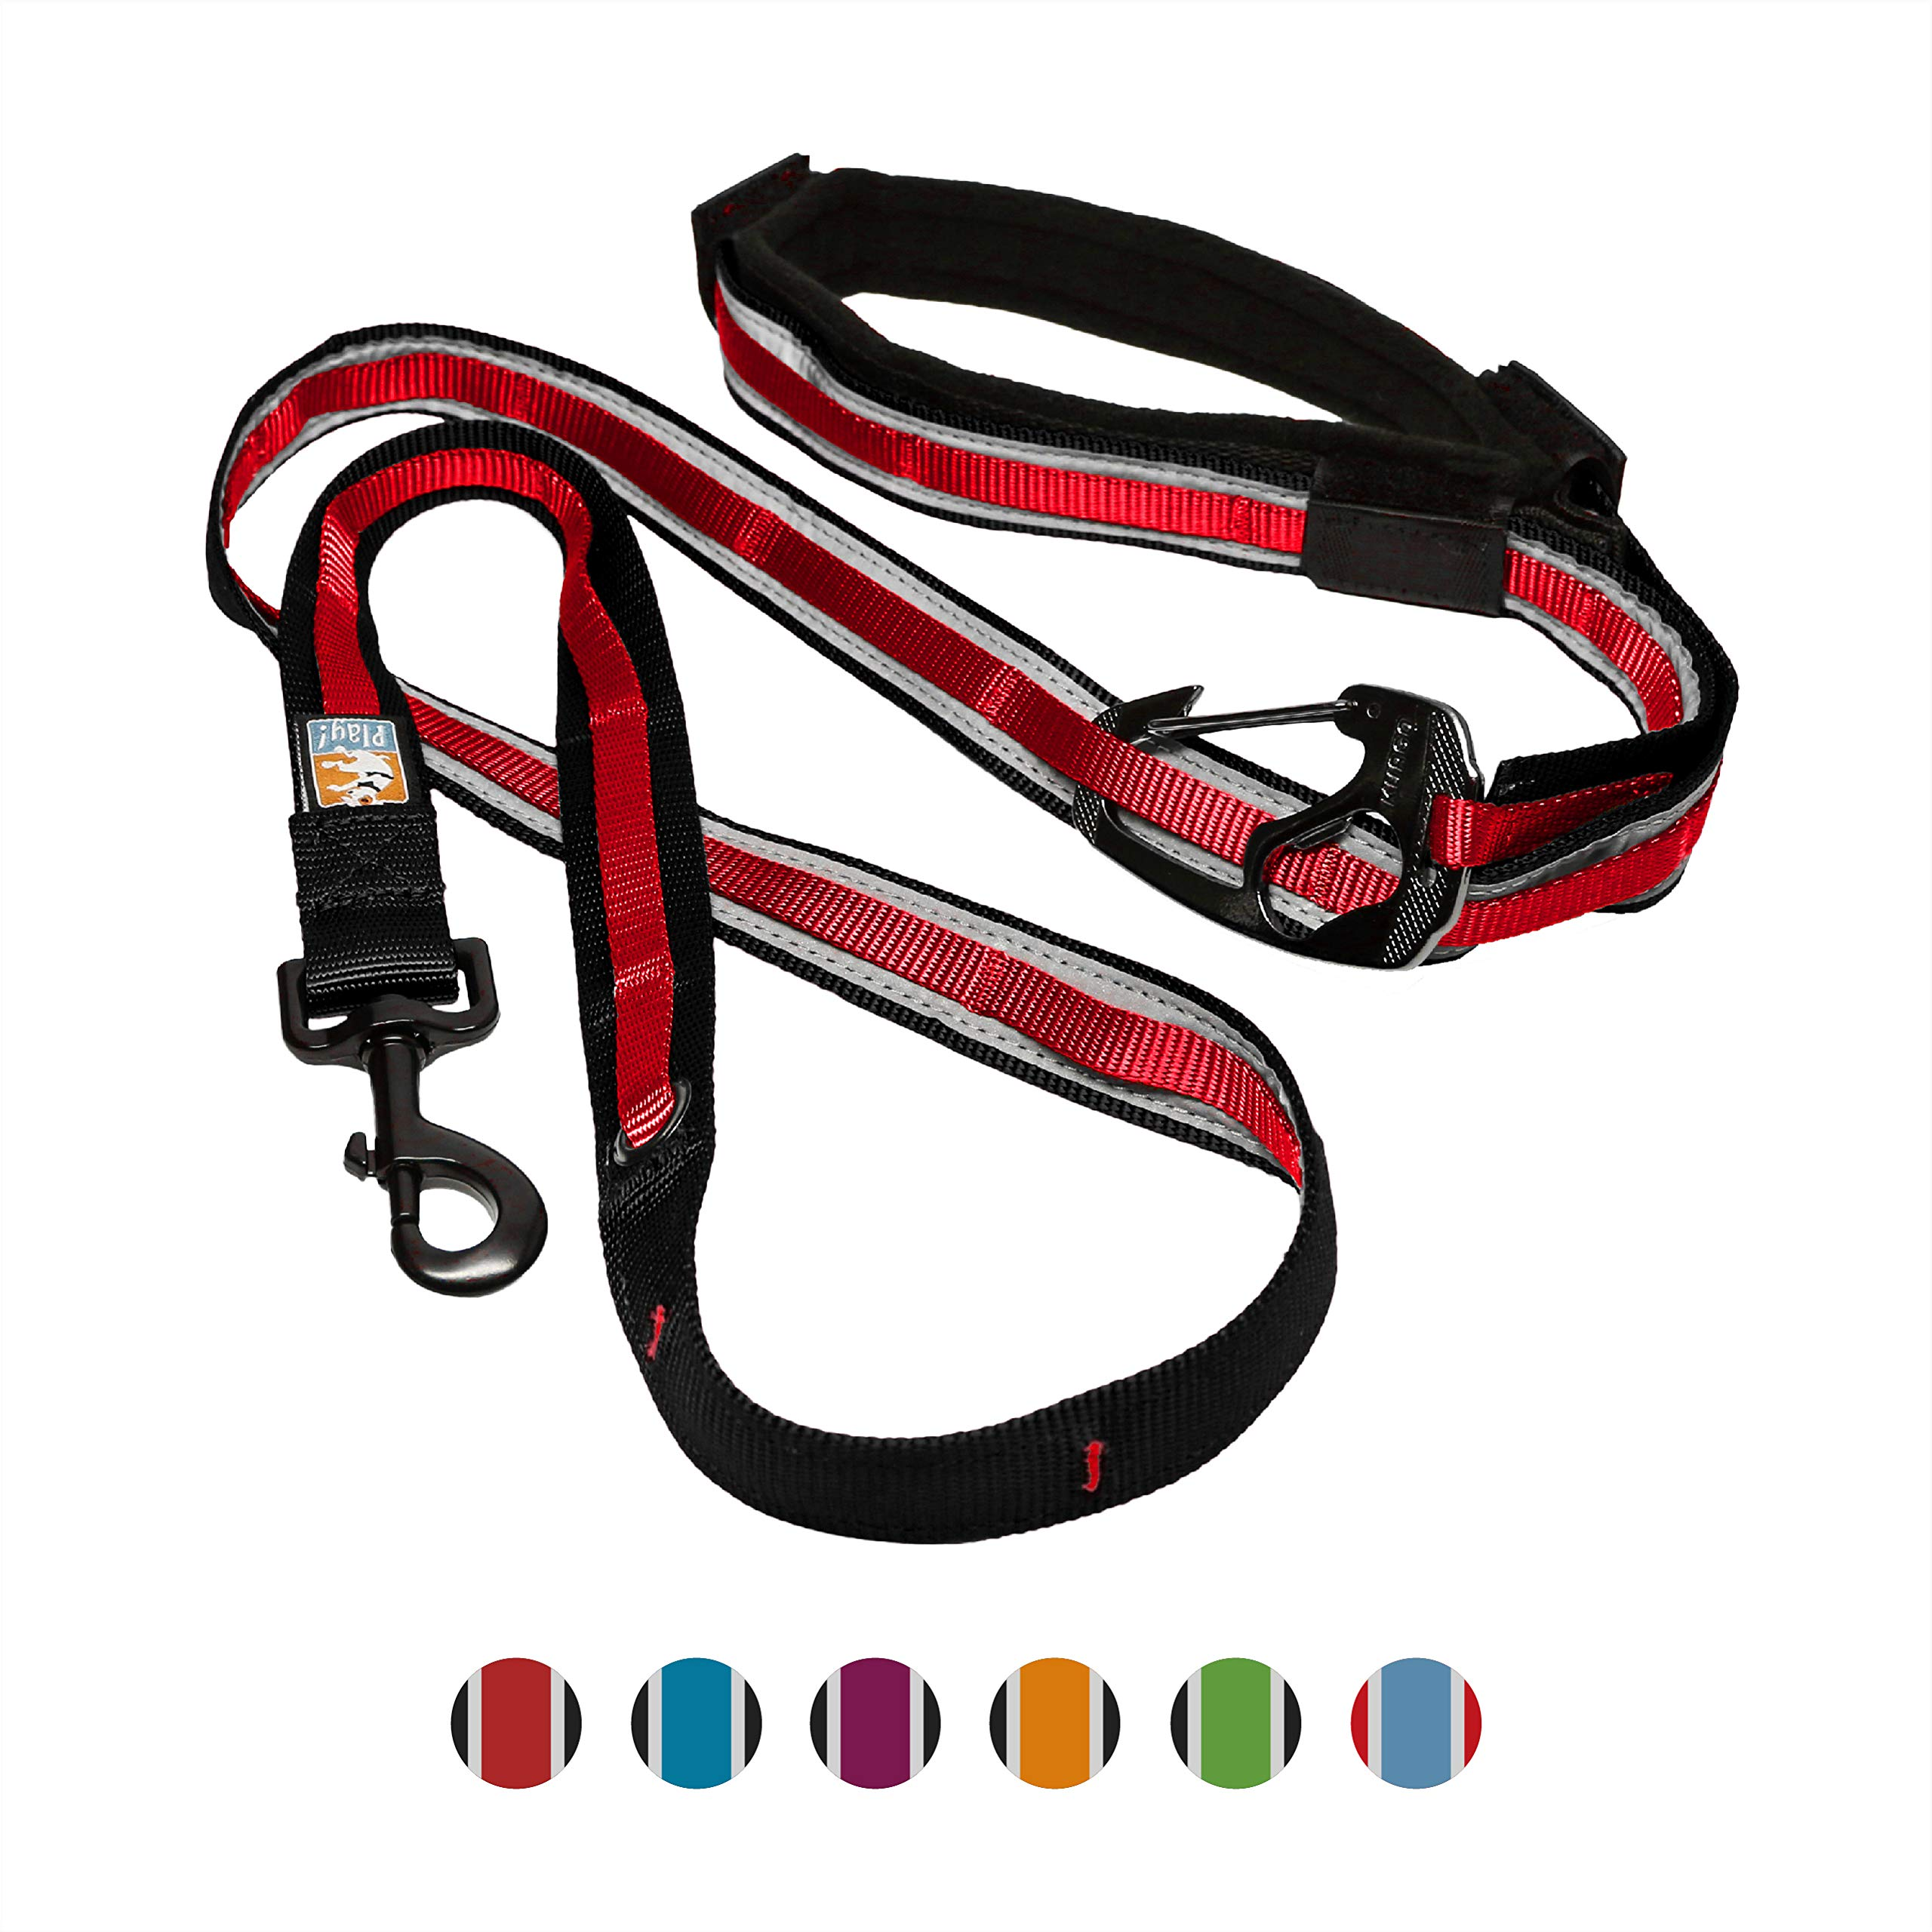 Kurgo 6 in 1 Hands Free Dog Leash |Reflective Running Belt Leash for Dogs |Crossbody & Waist Belt Leash |Carabiner Clip |Padded Handle for Training, Hiking or Jogging |Quantum Leash |6 Colors by Kurgo